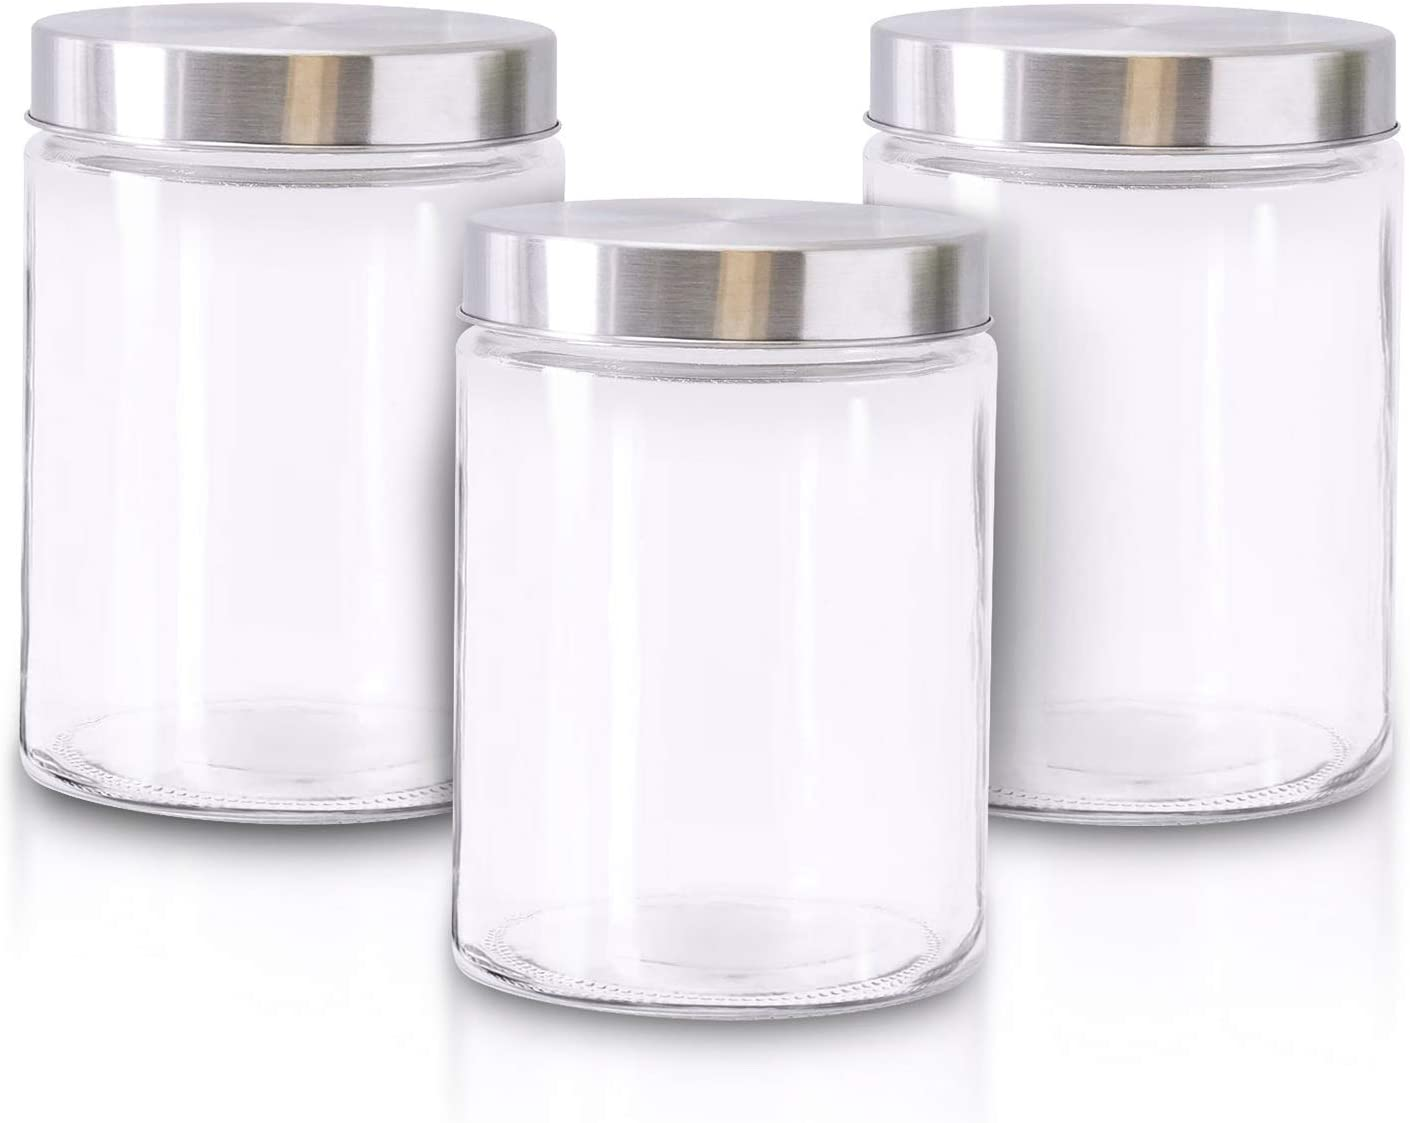 Glass Jars for Kitchen – Set of 3 Medium Food Storage Containers – 42Oz Storage Jars with Metallic Lids – Suitable for Snacks, Coffee, Pet Treats – Airtight Screw-On Lid